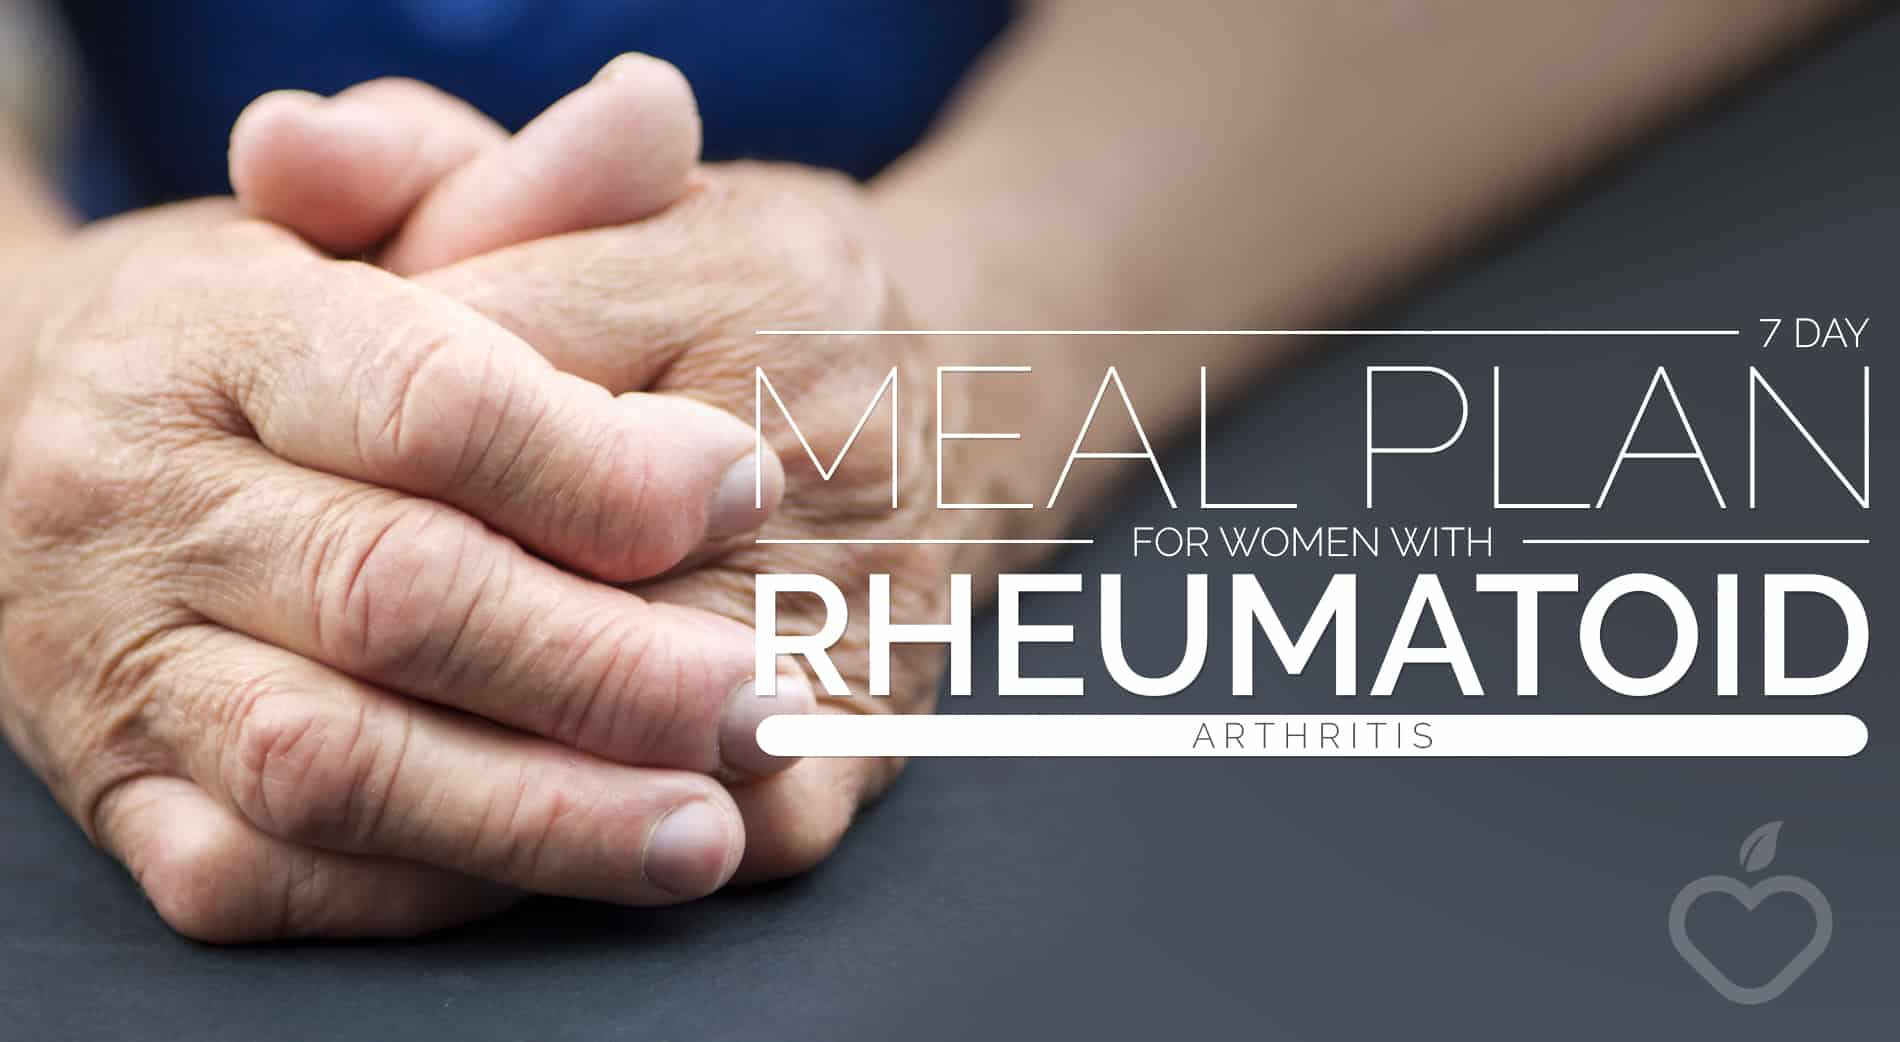 Rheumatoid Arthritis Image Design 1 - 7-Day Meal Plan for Women with Rheumatoid Arthritis